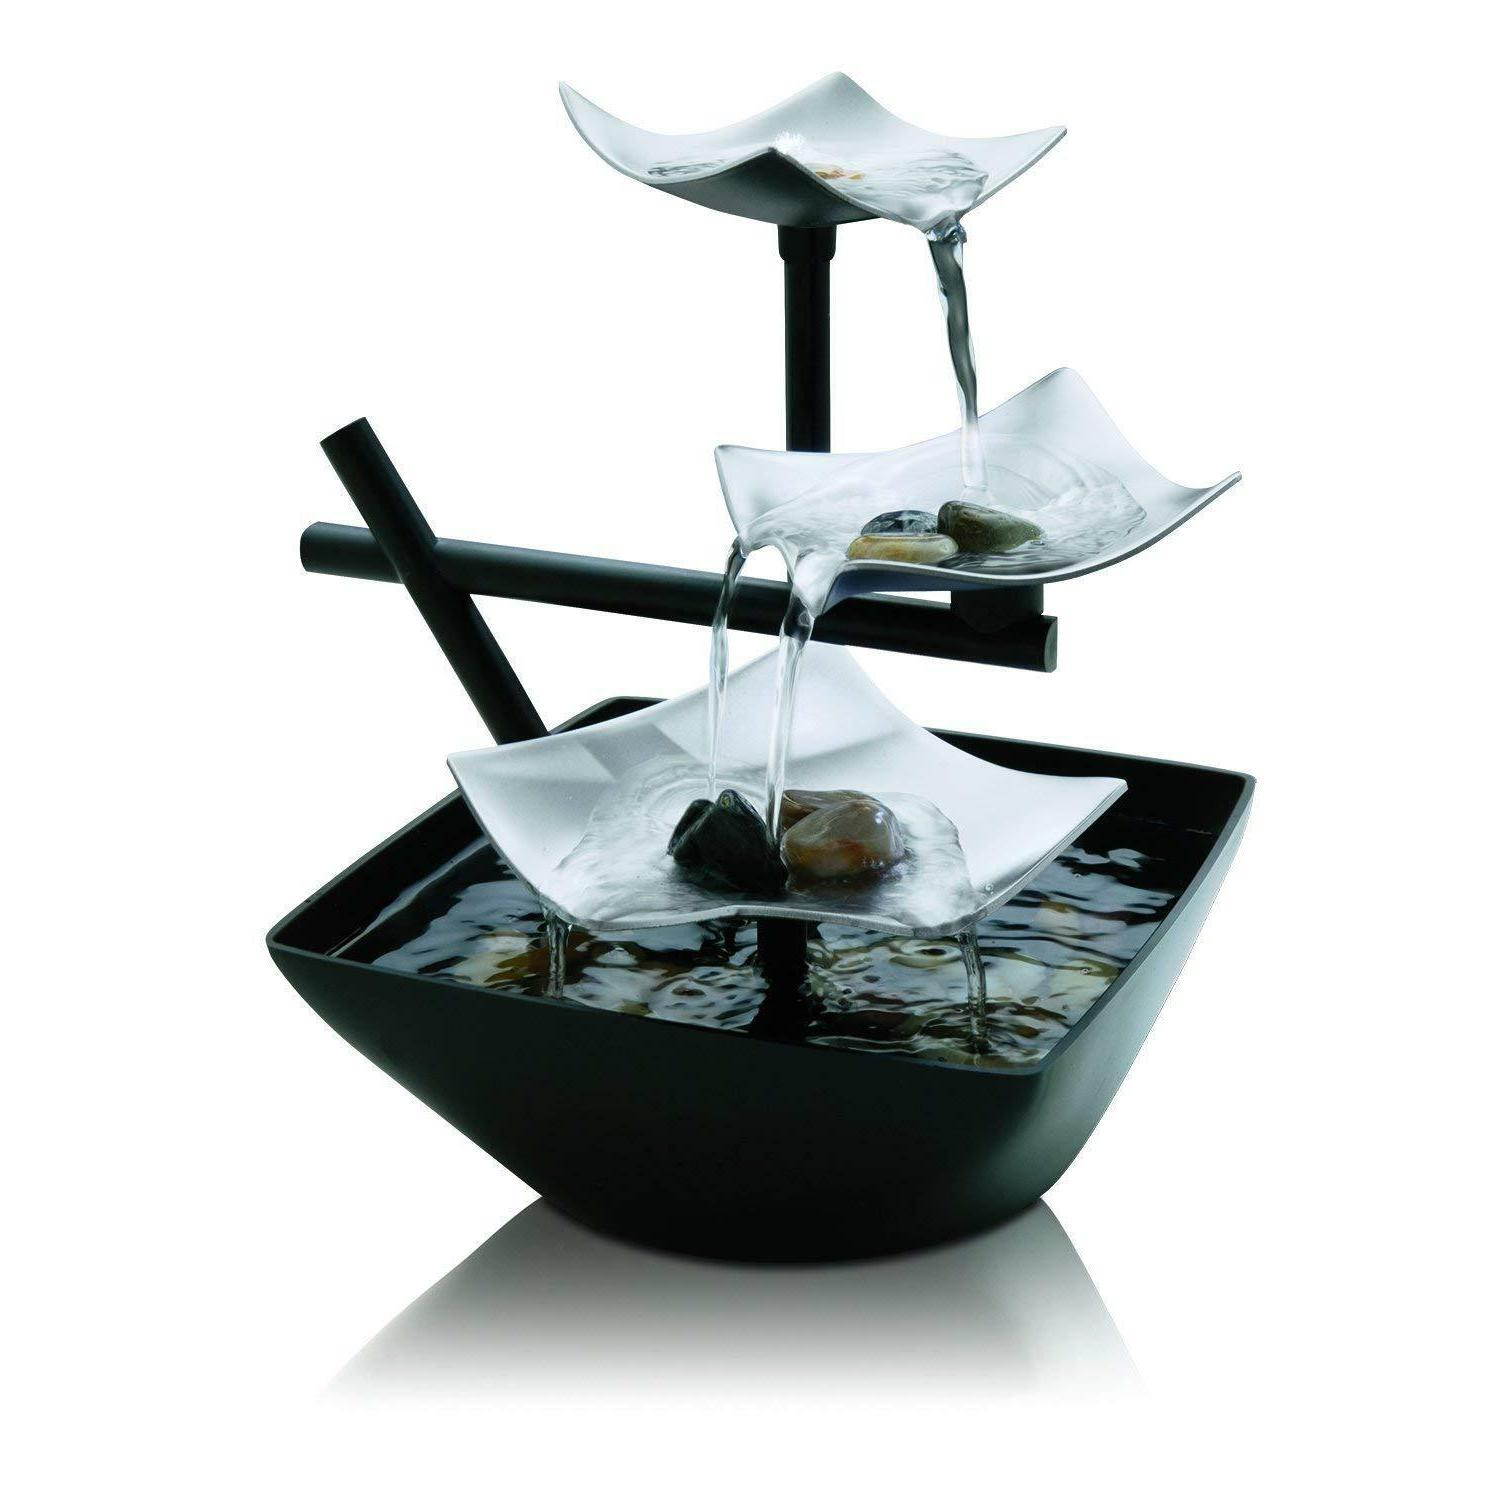 Waterfall Indoor Water Display Decorative Zen Relaxation New